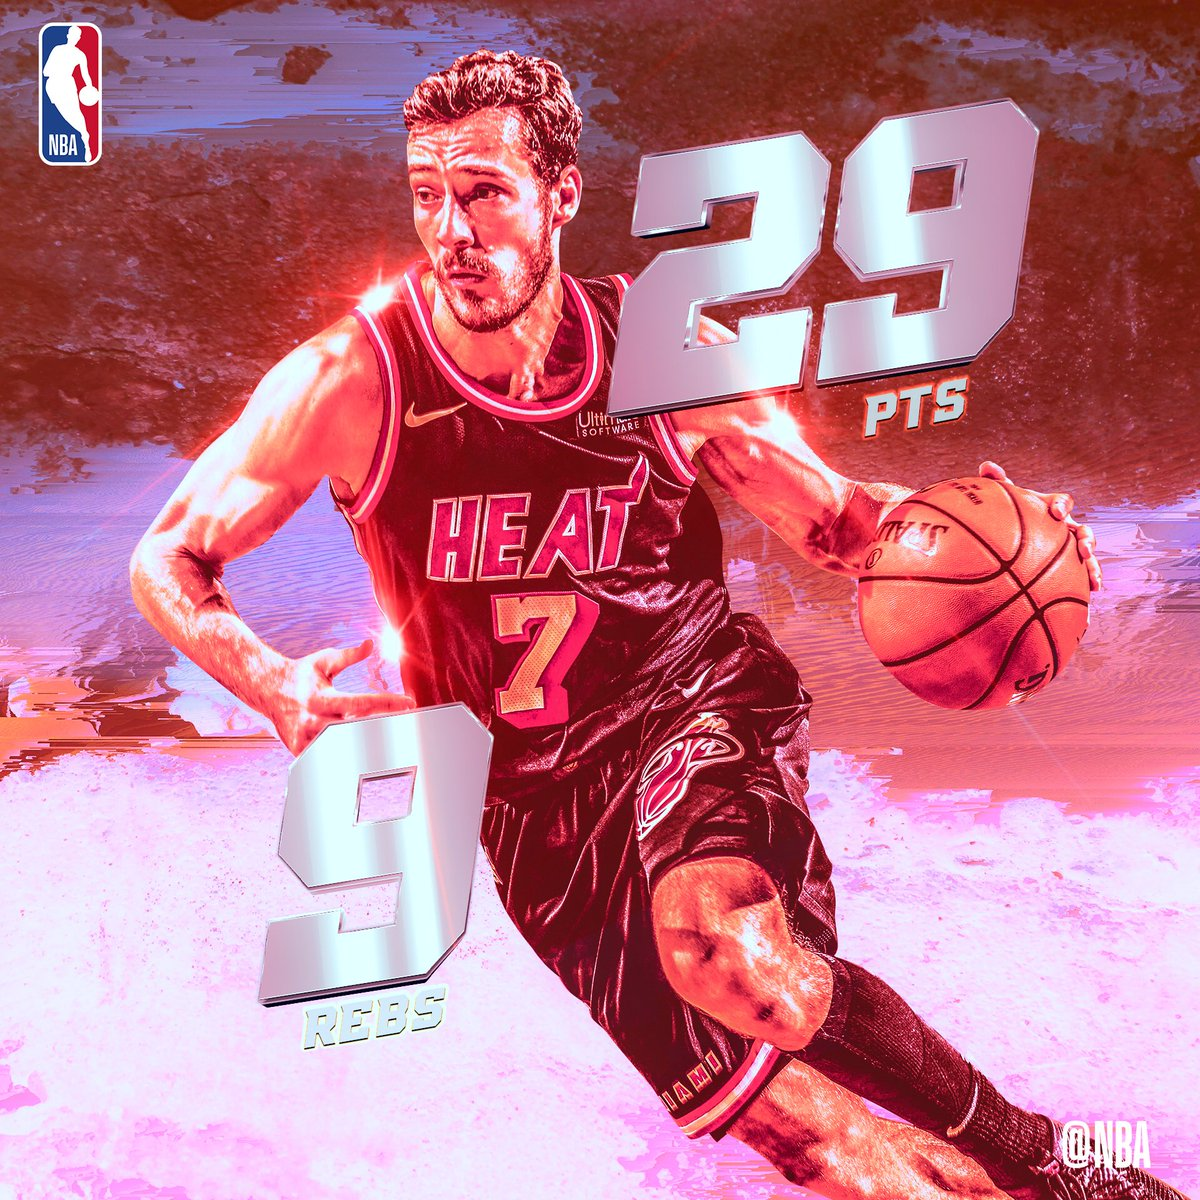 Goran Dragic puts in a season-high 29 PTS and grabs 9 REBS for the @MiamiHEAT!  #SAPStatLineOfTheNight